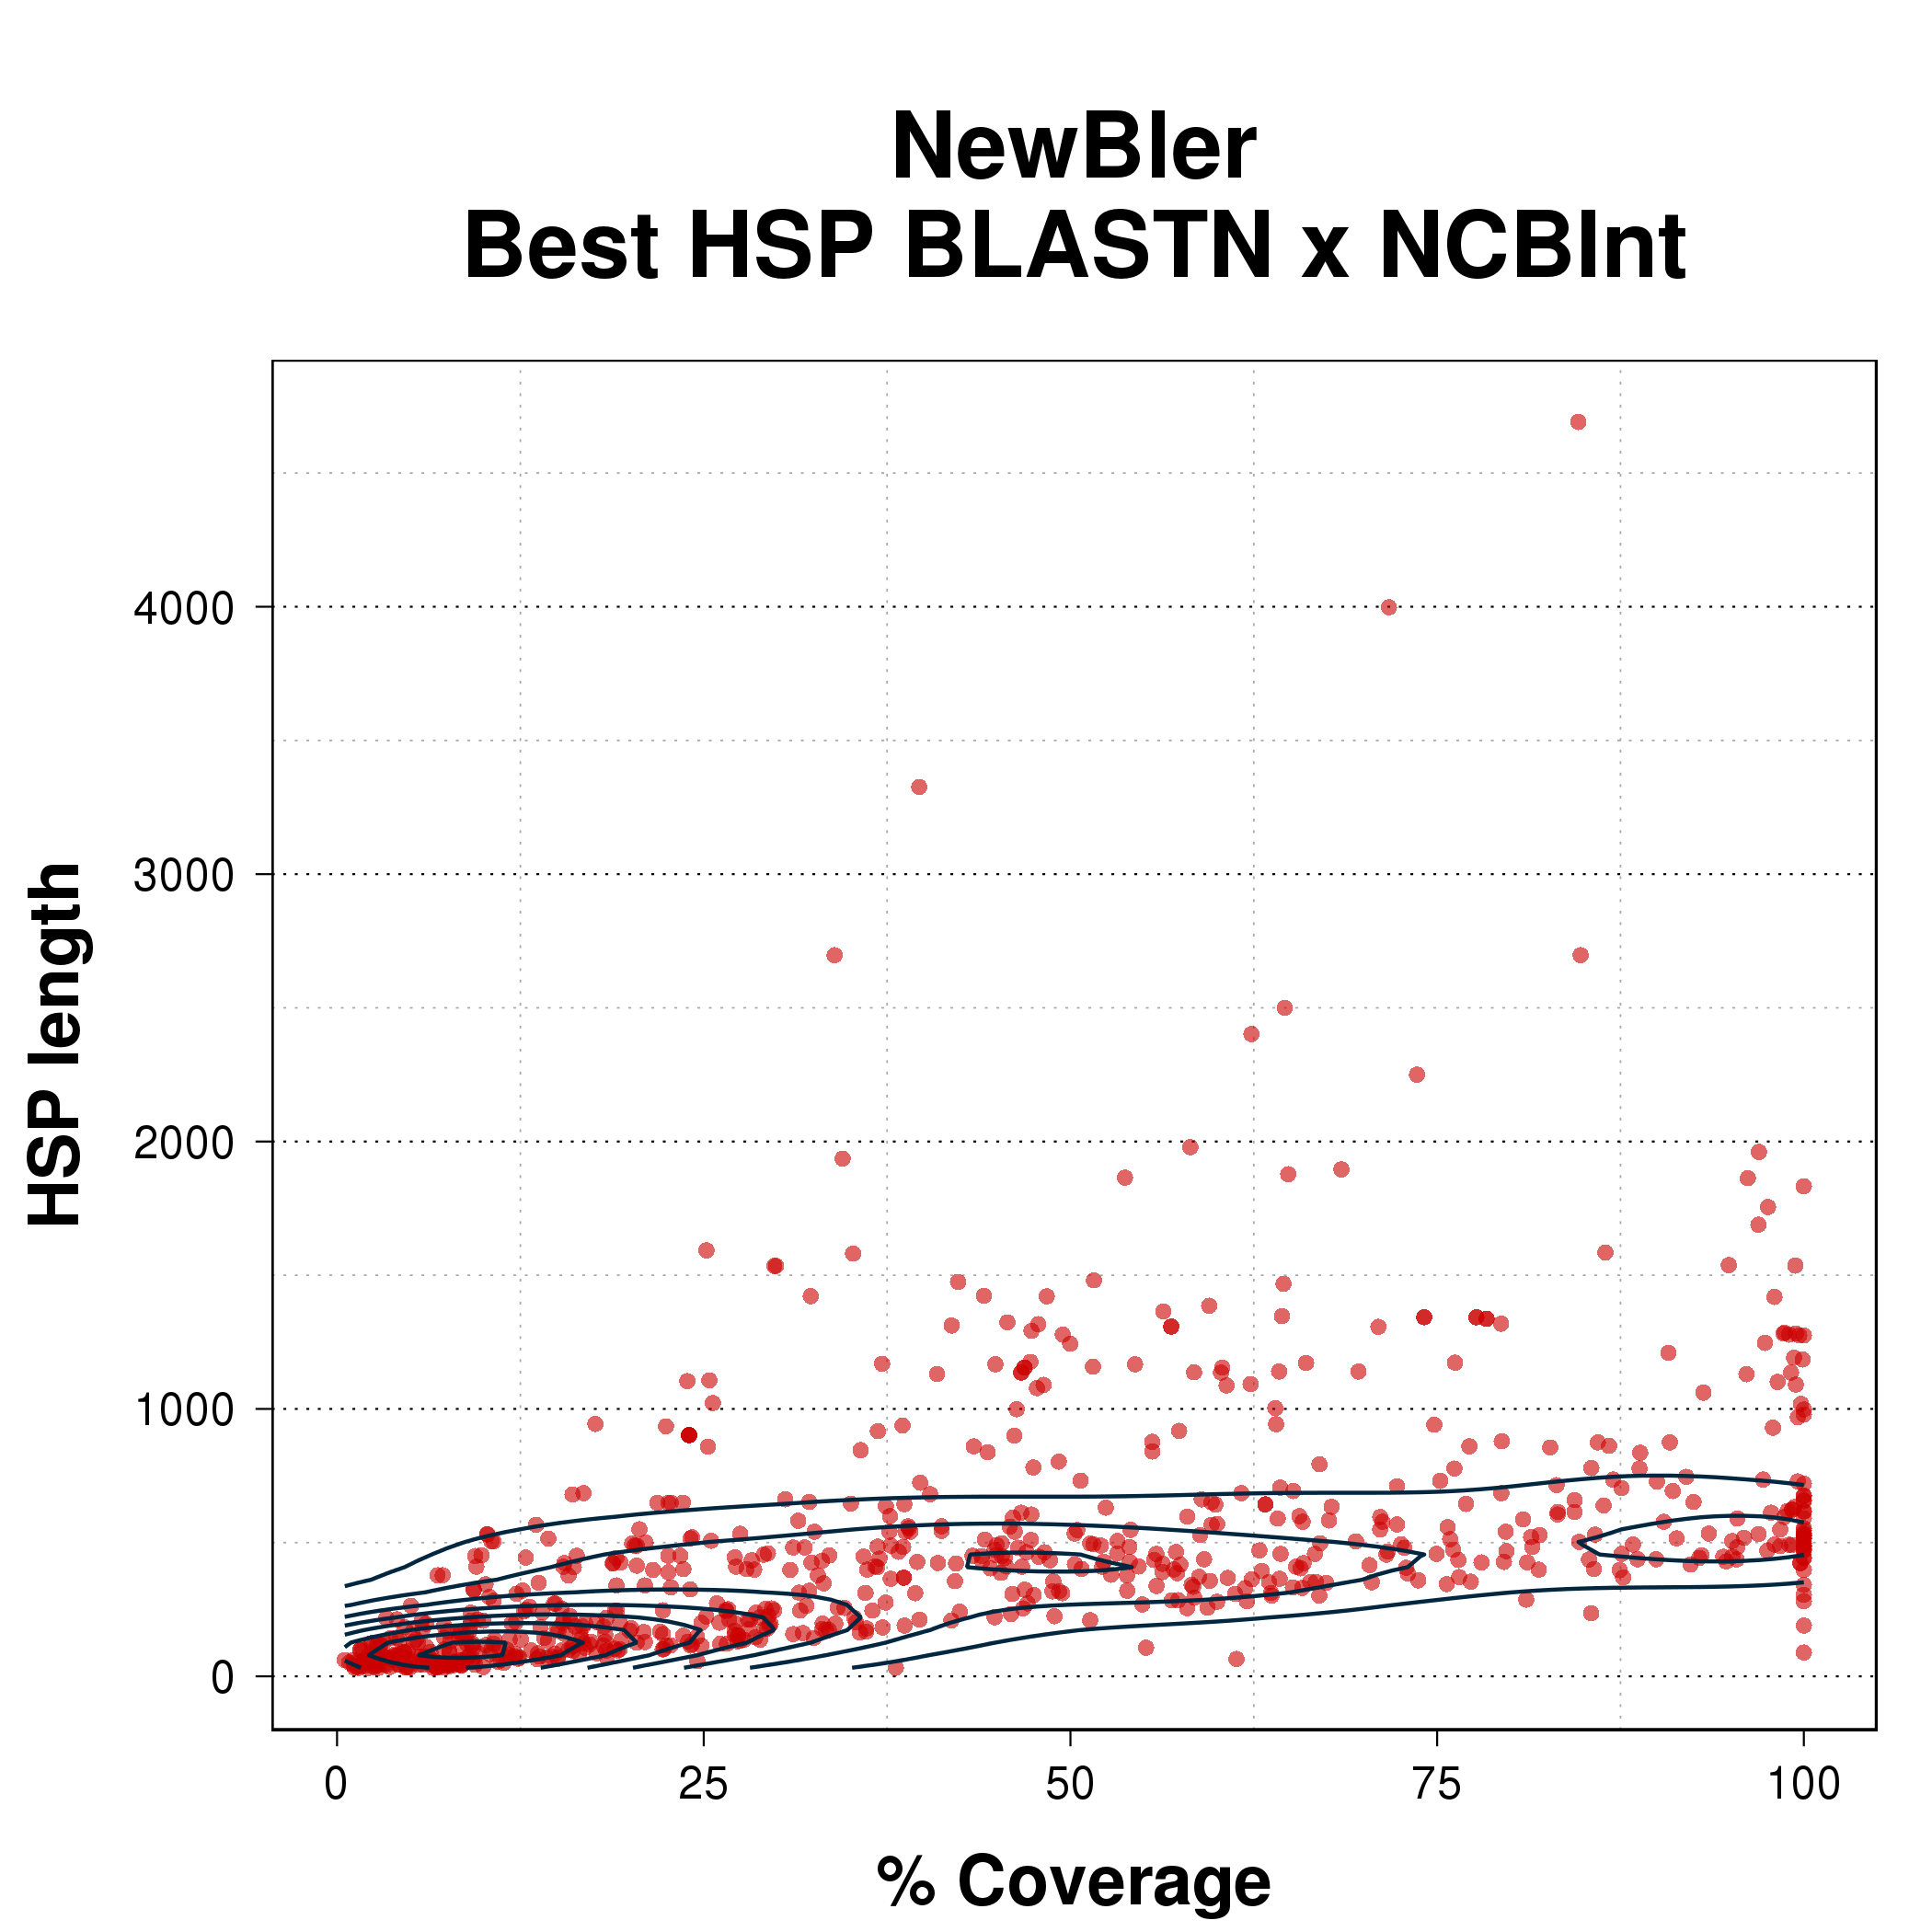 Scatterplot comparing coverage percent with HSP length for the best HSP from BLASTN of NewBler assembly against NCBInt.